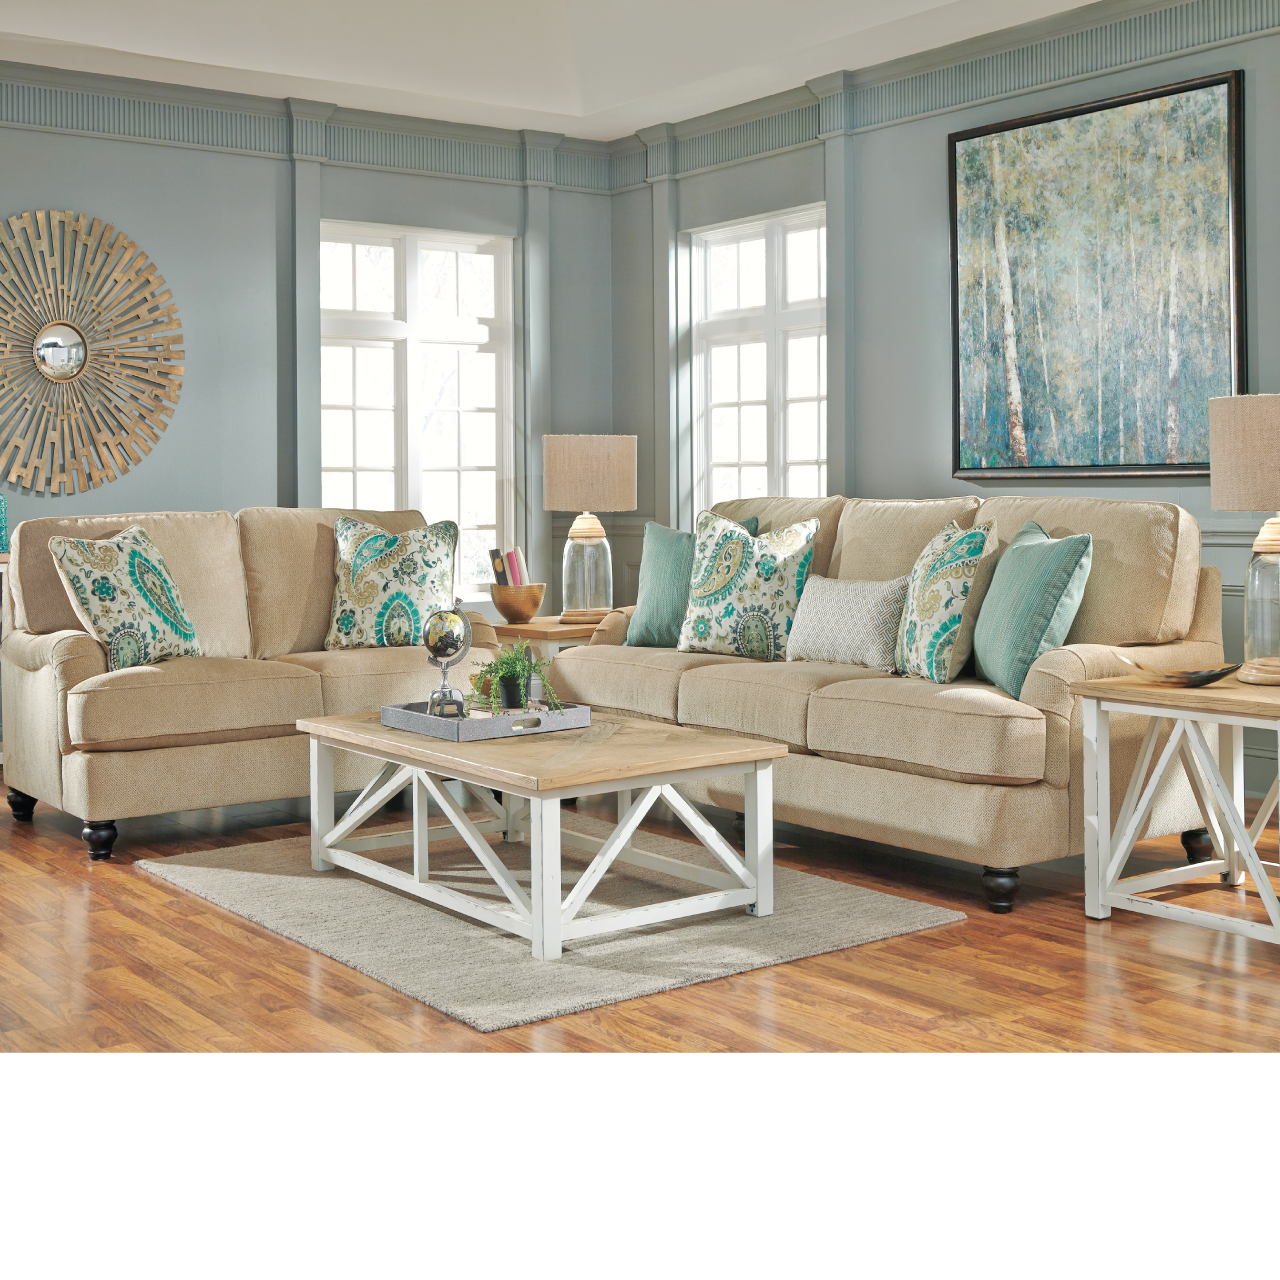 Coastal living room ideas lochian sofa by ashley for I living furniture